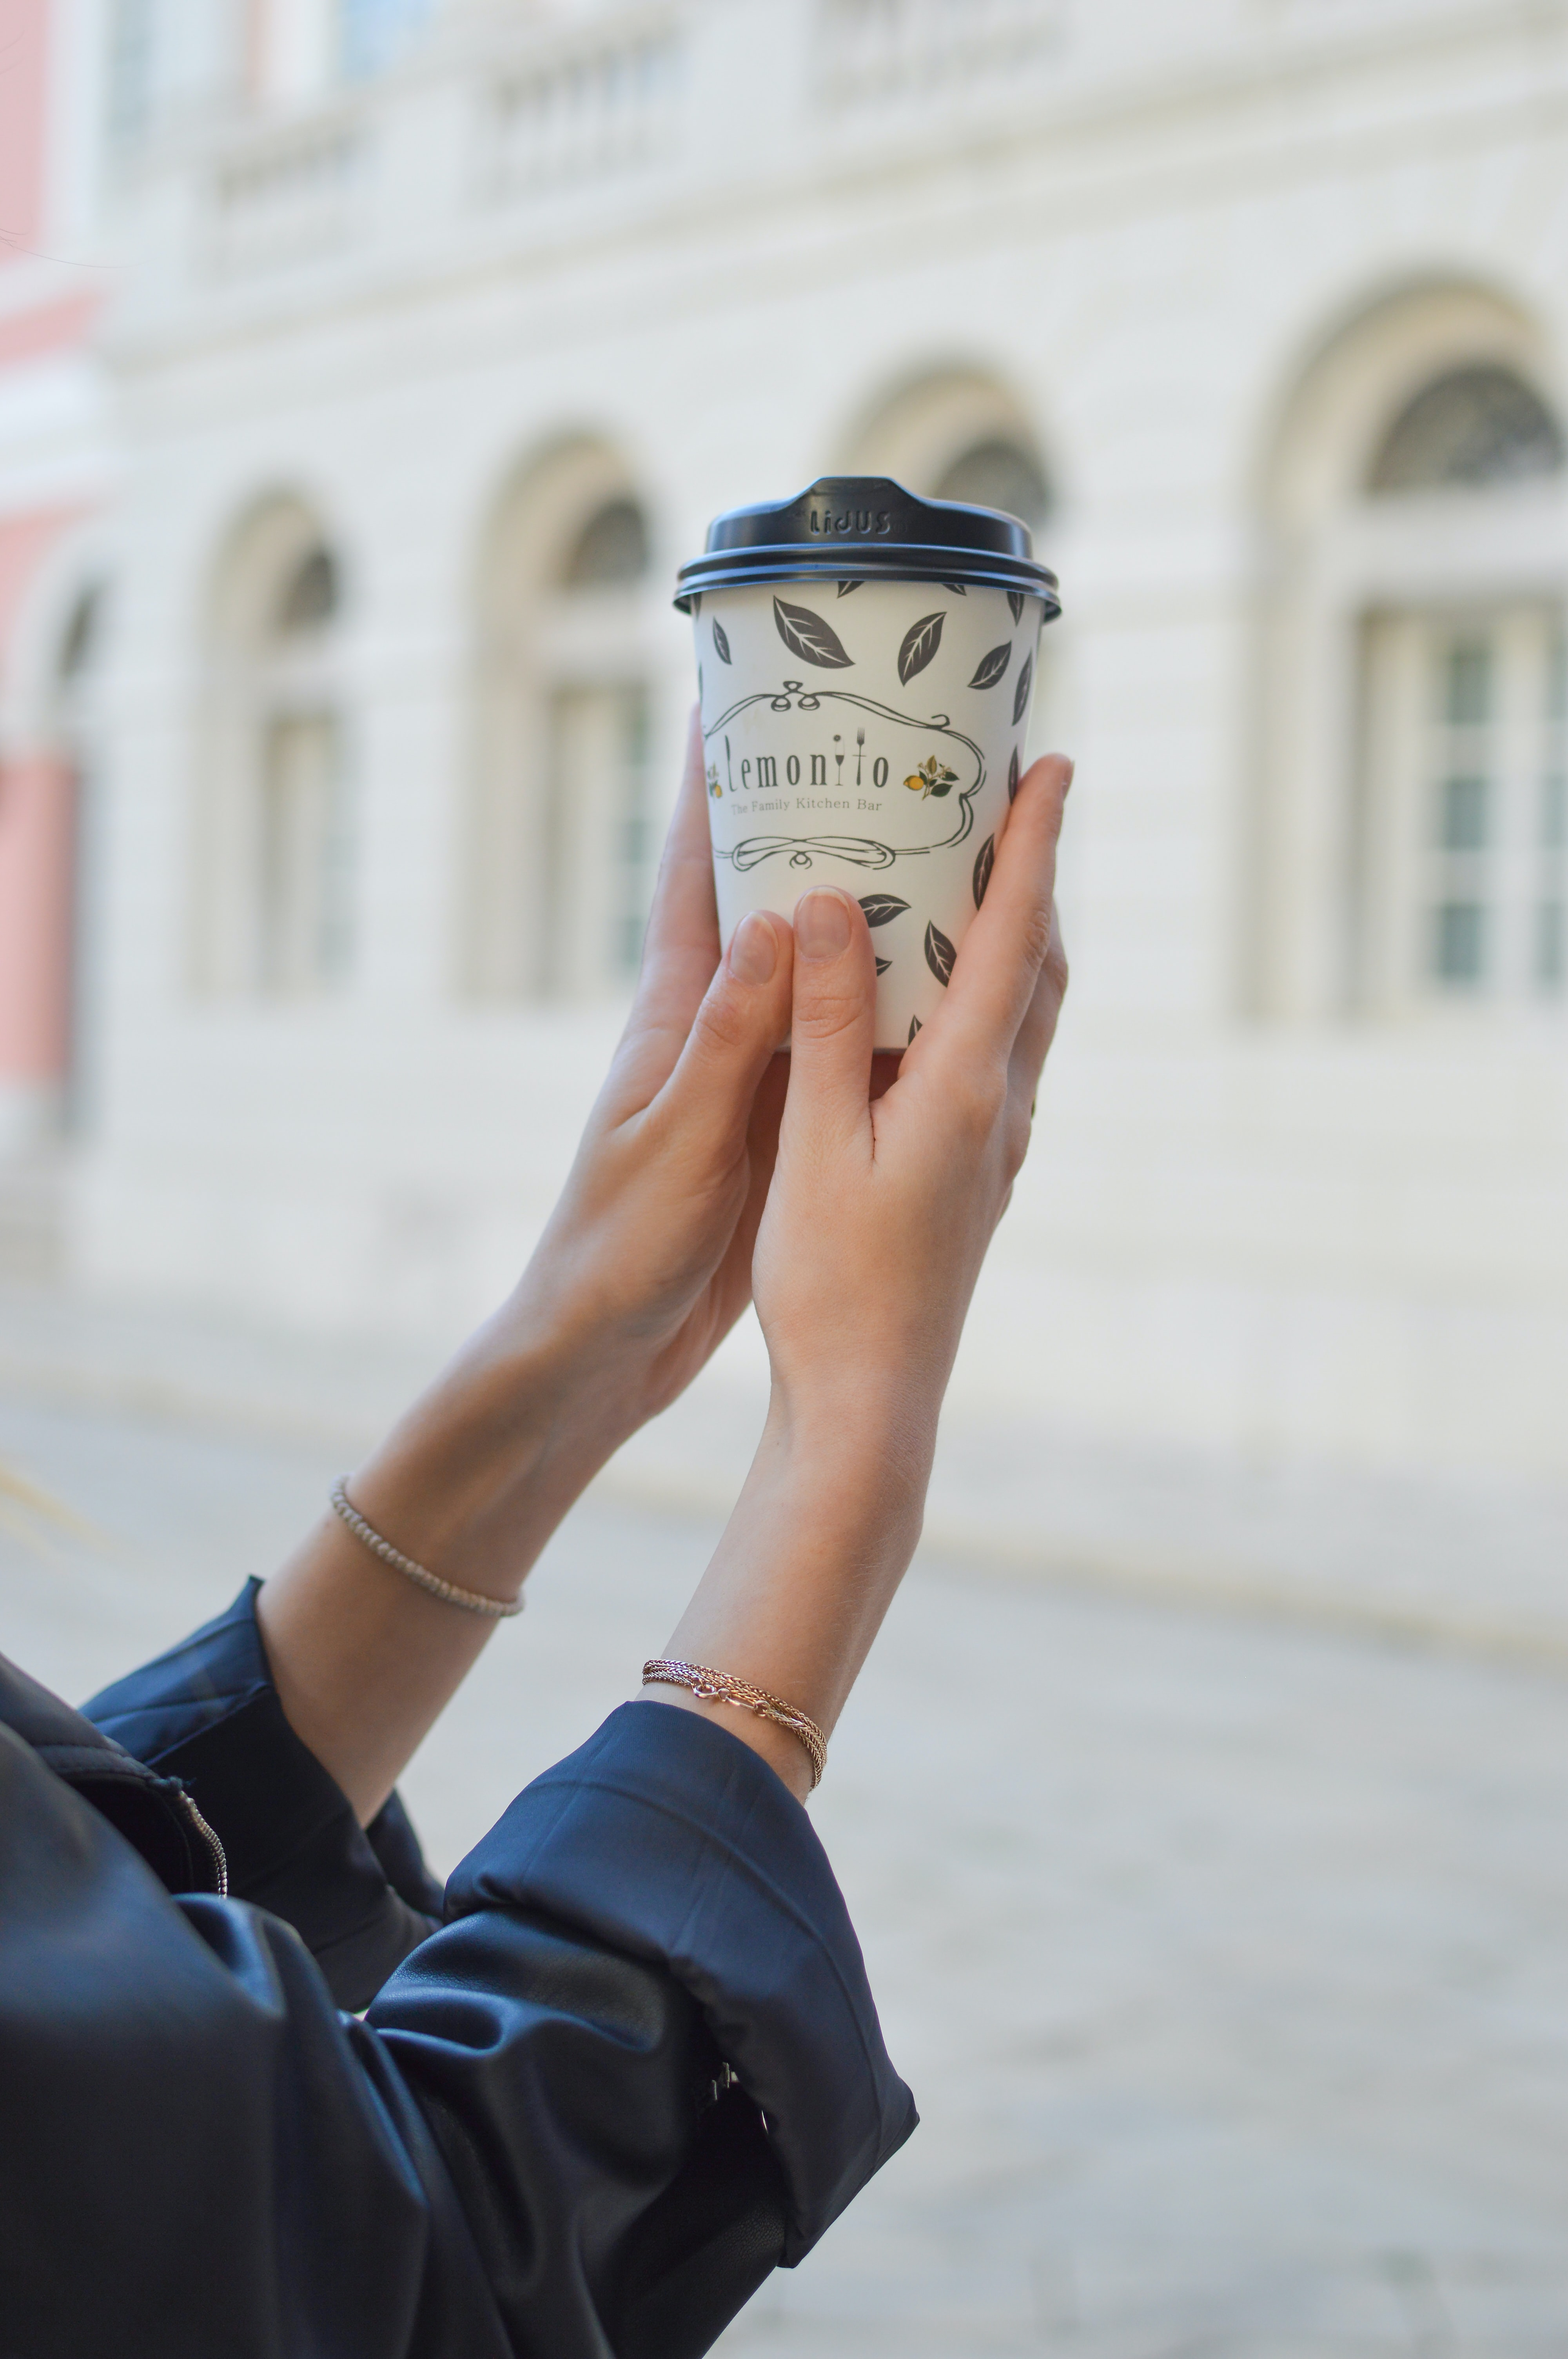 A woman holding up a takeaway coffee cup